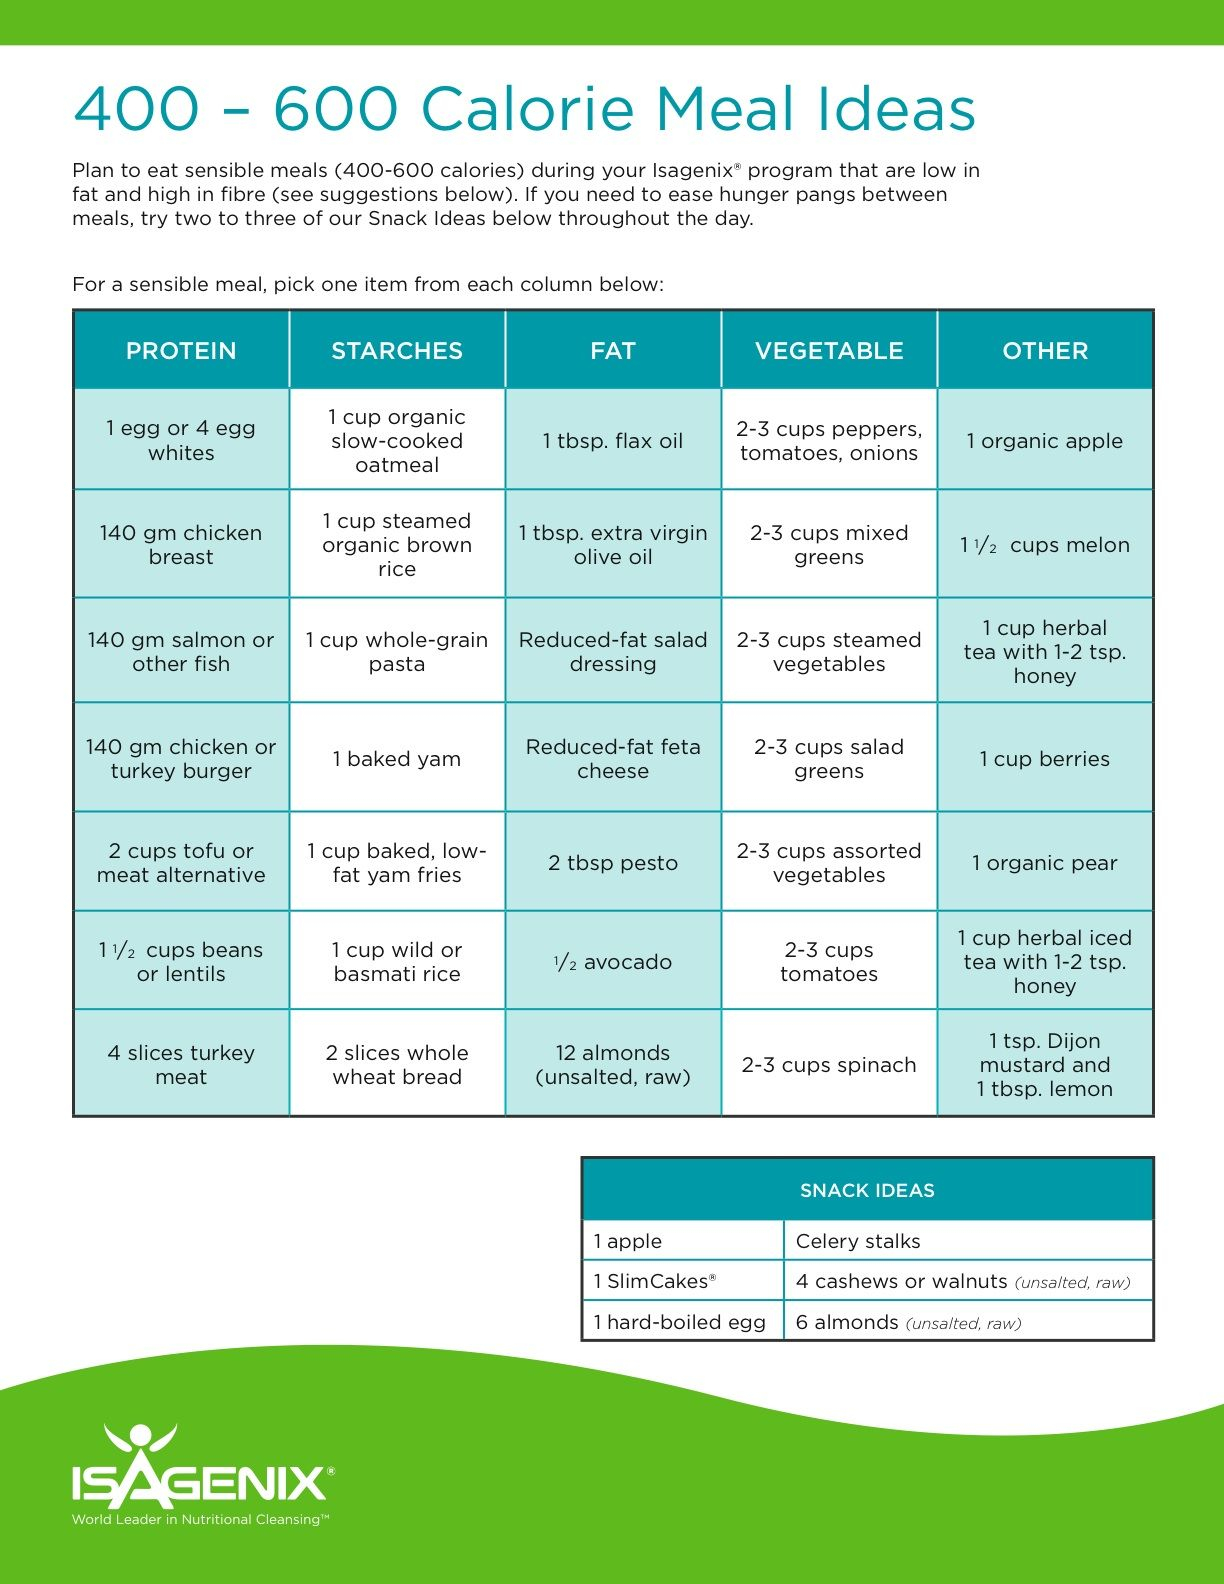 Prepping For My Isagenix 9 Day Cleanse! Shannon's Kitchen In Isagenix Cleanse Day Schedule Printable